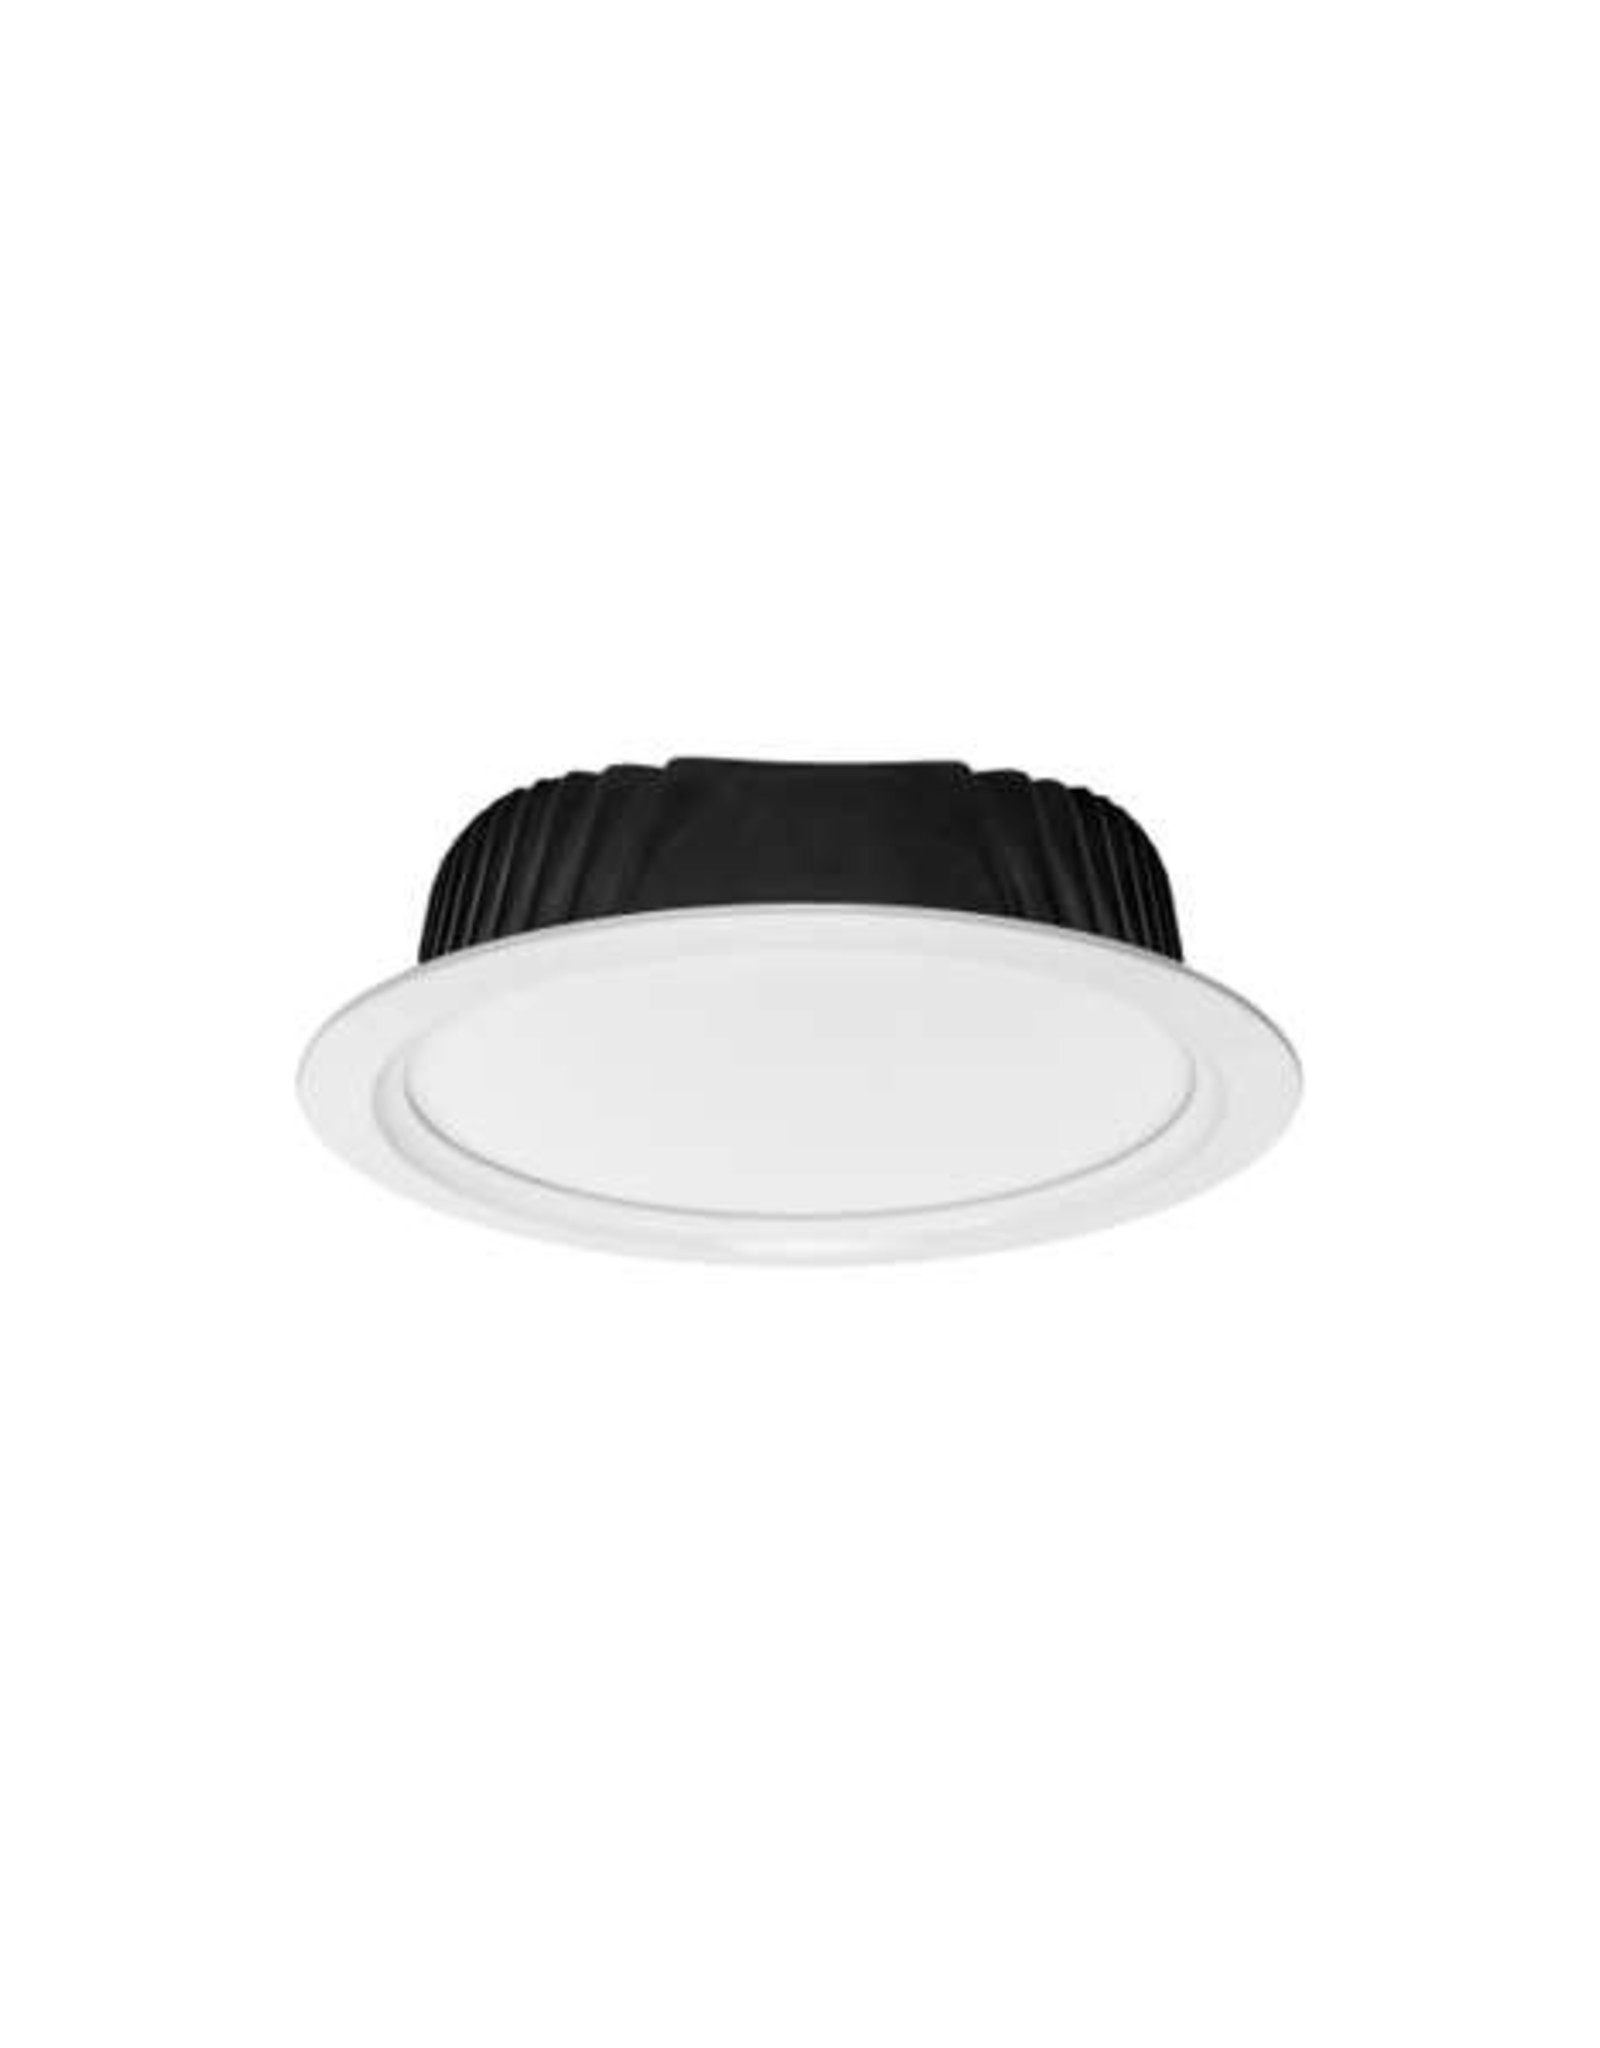 LUXON LED DOWNLIGHT:LED RC 2.0 I - 1700 lm